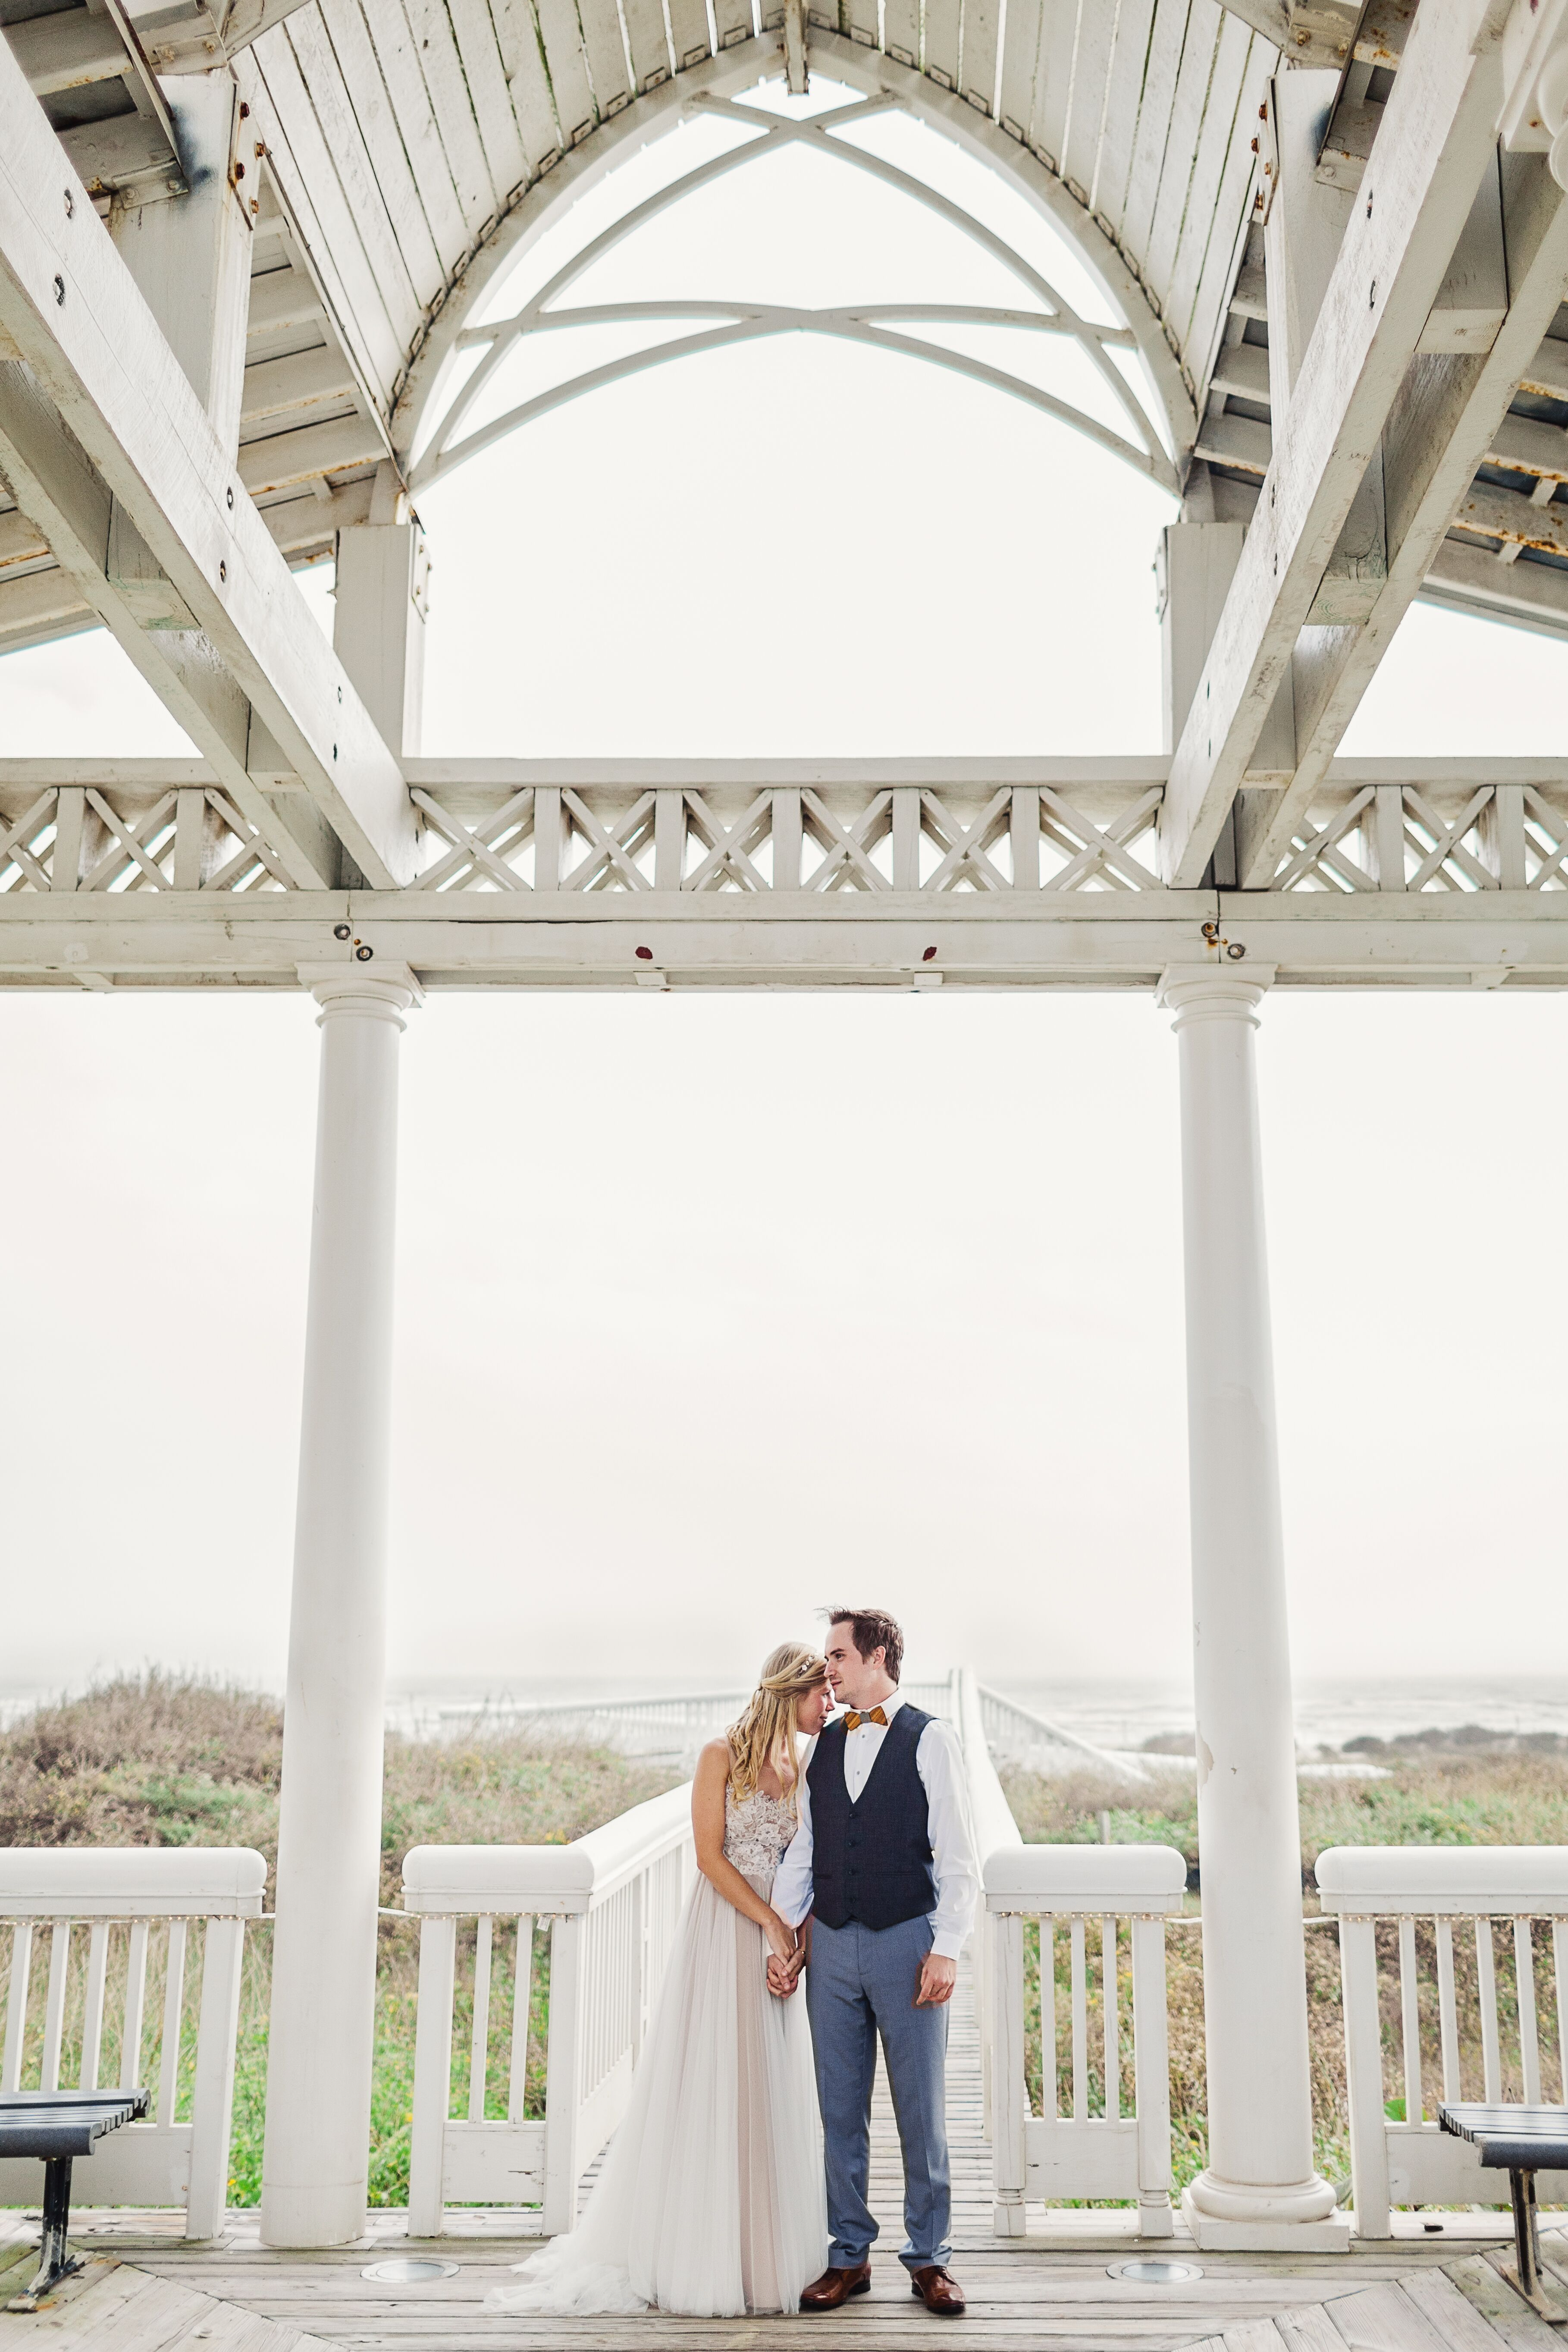 A Diy Winter Wedding At Garten Verein In Galveston Texas